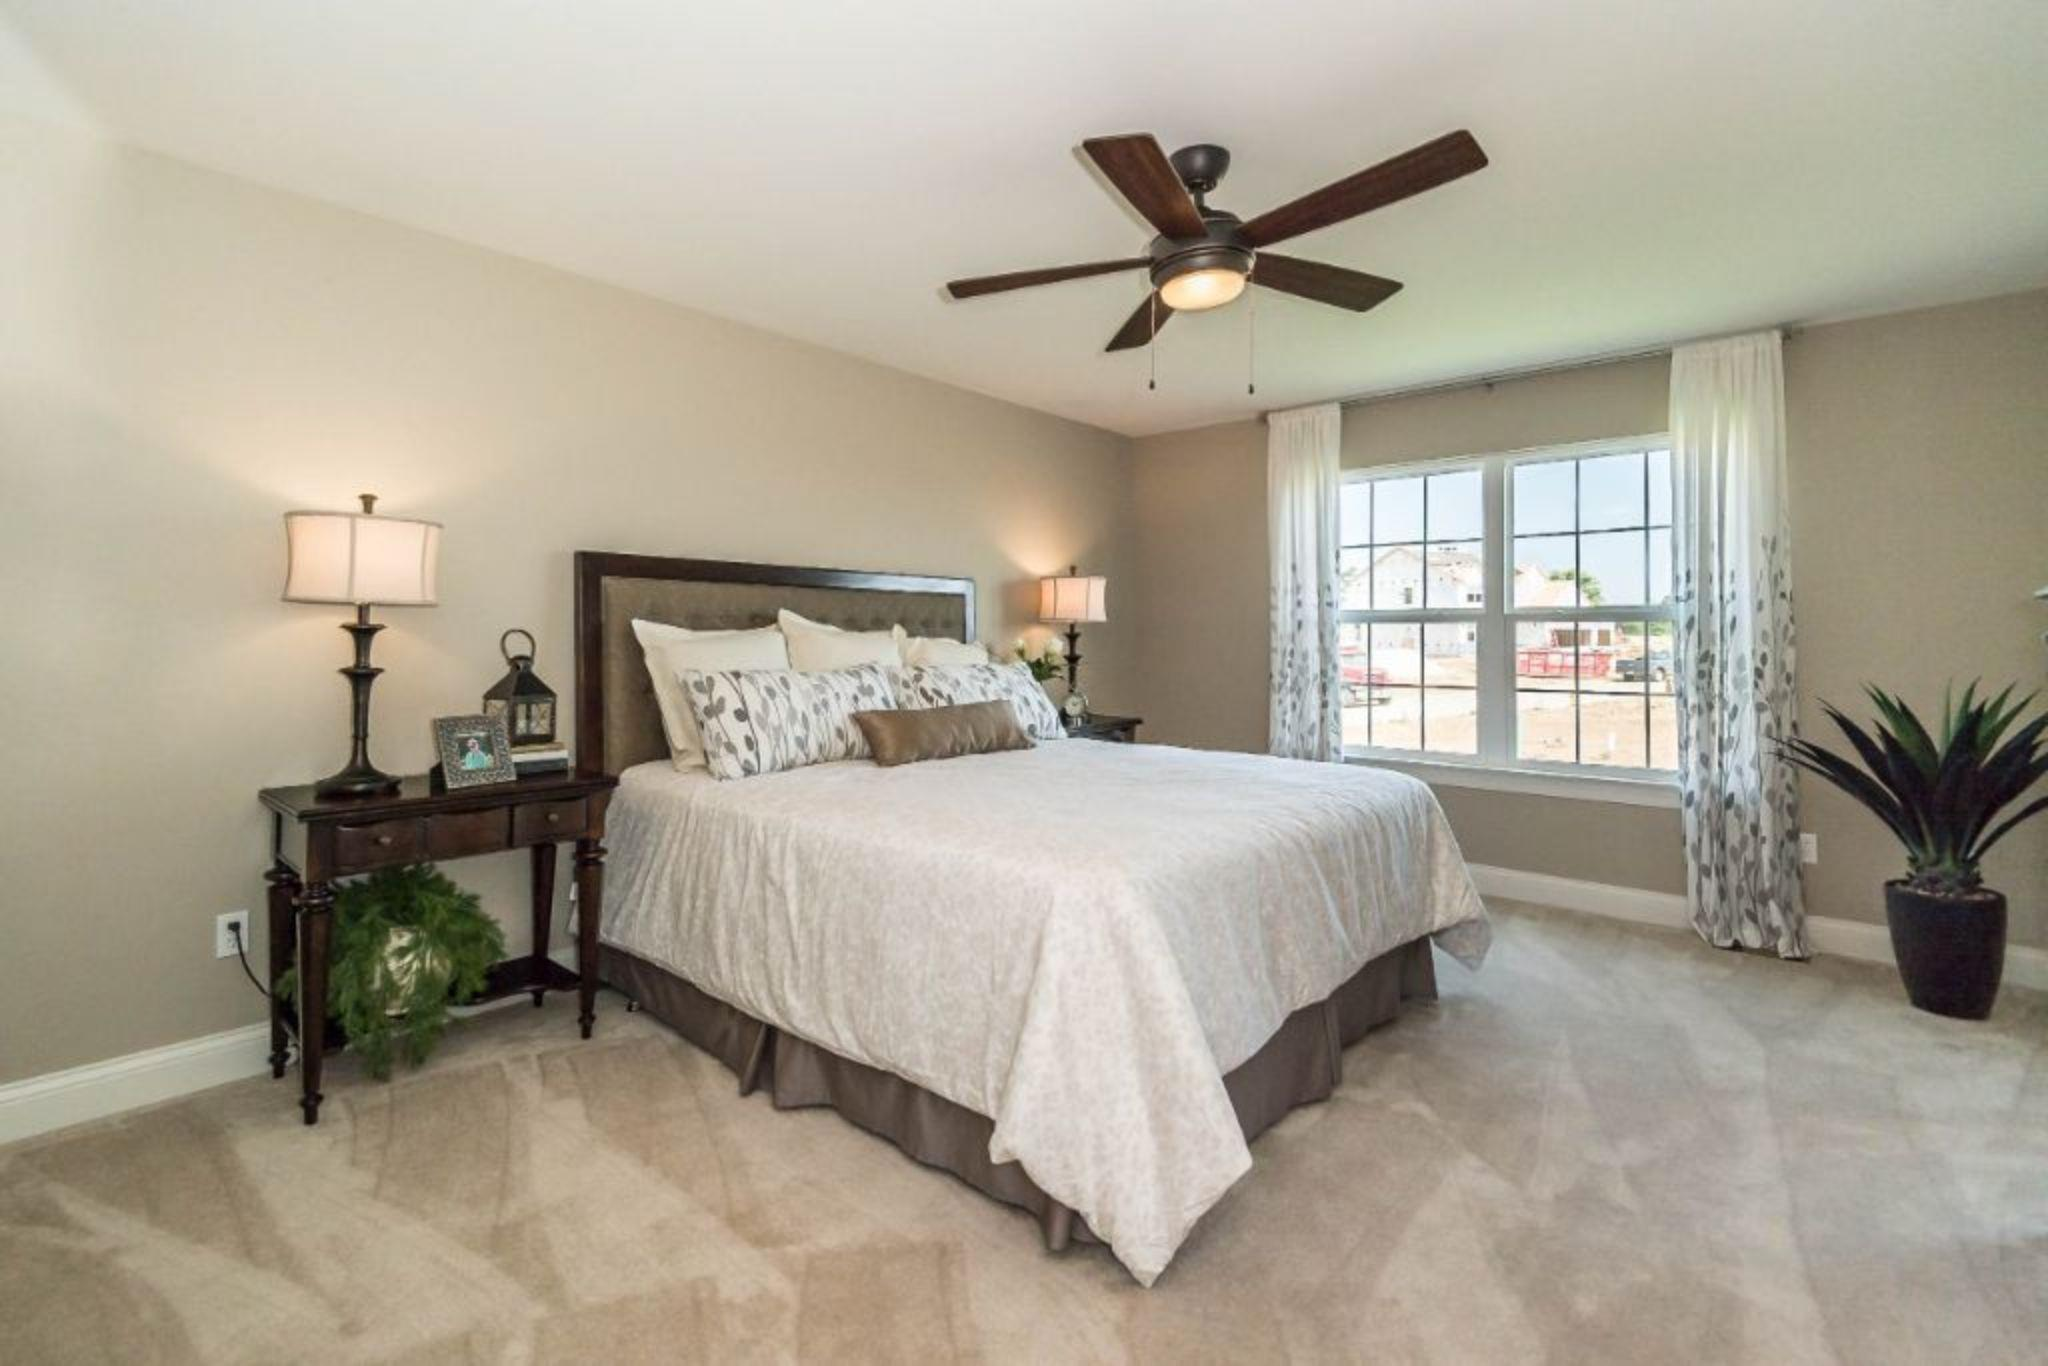 Bedroom featured in the Fairfax By Payne Family Homes LLC in St. Louis, MO